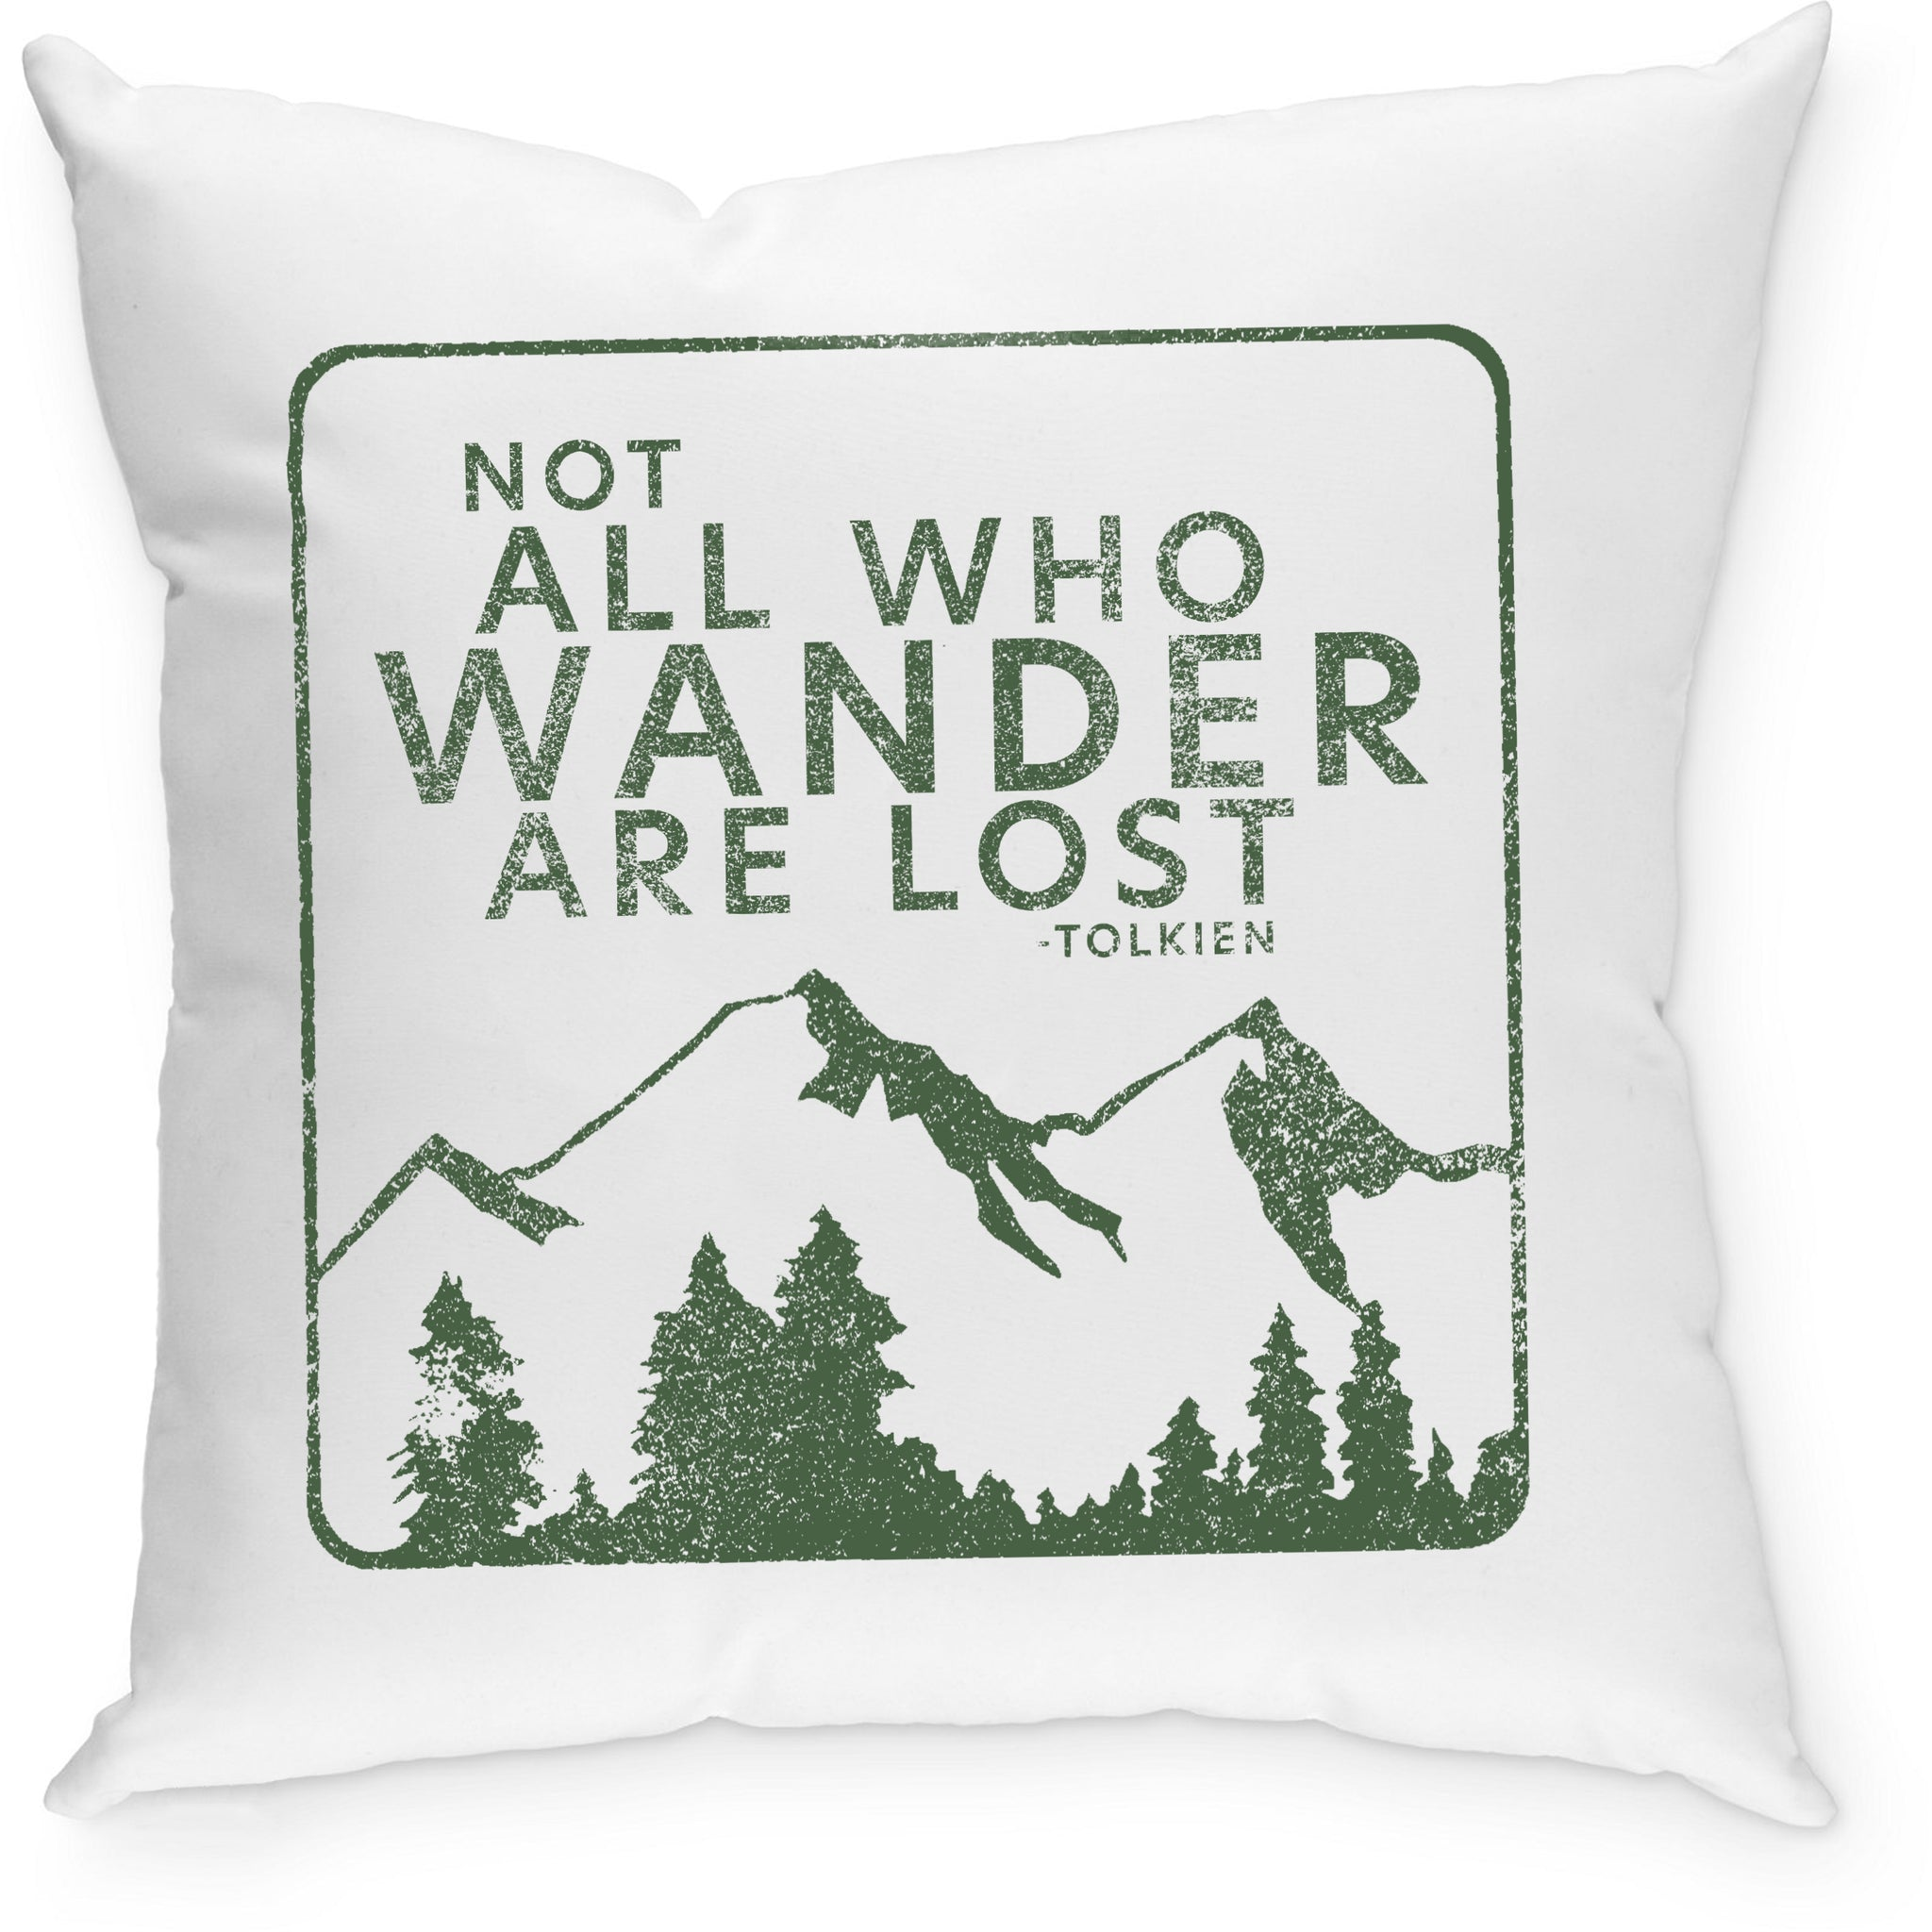 Sevenly - Cotton Canvas Throw Pillow - Not All Who Wander Are Lost